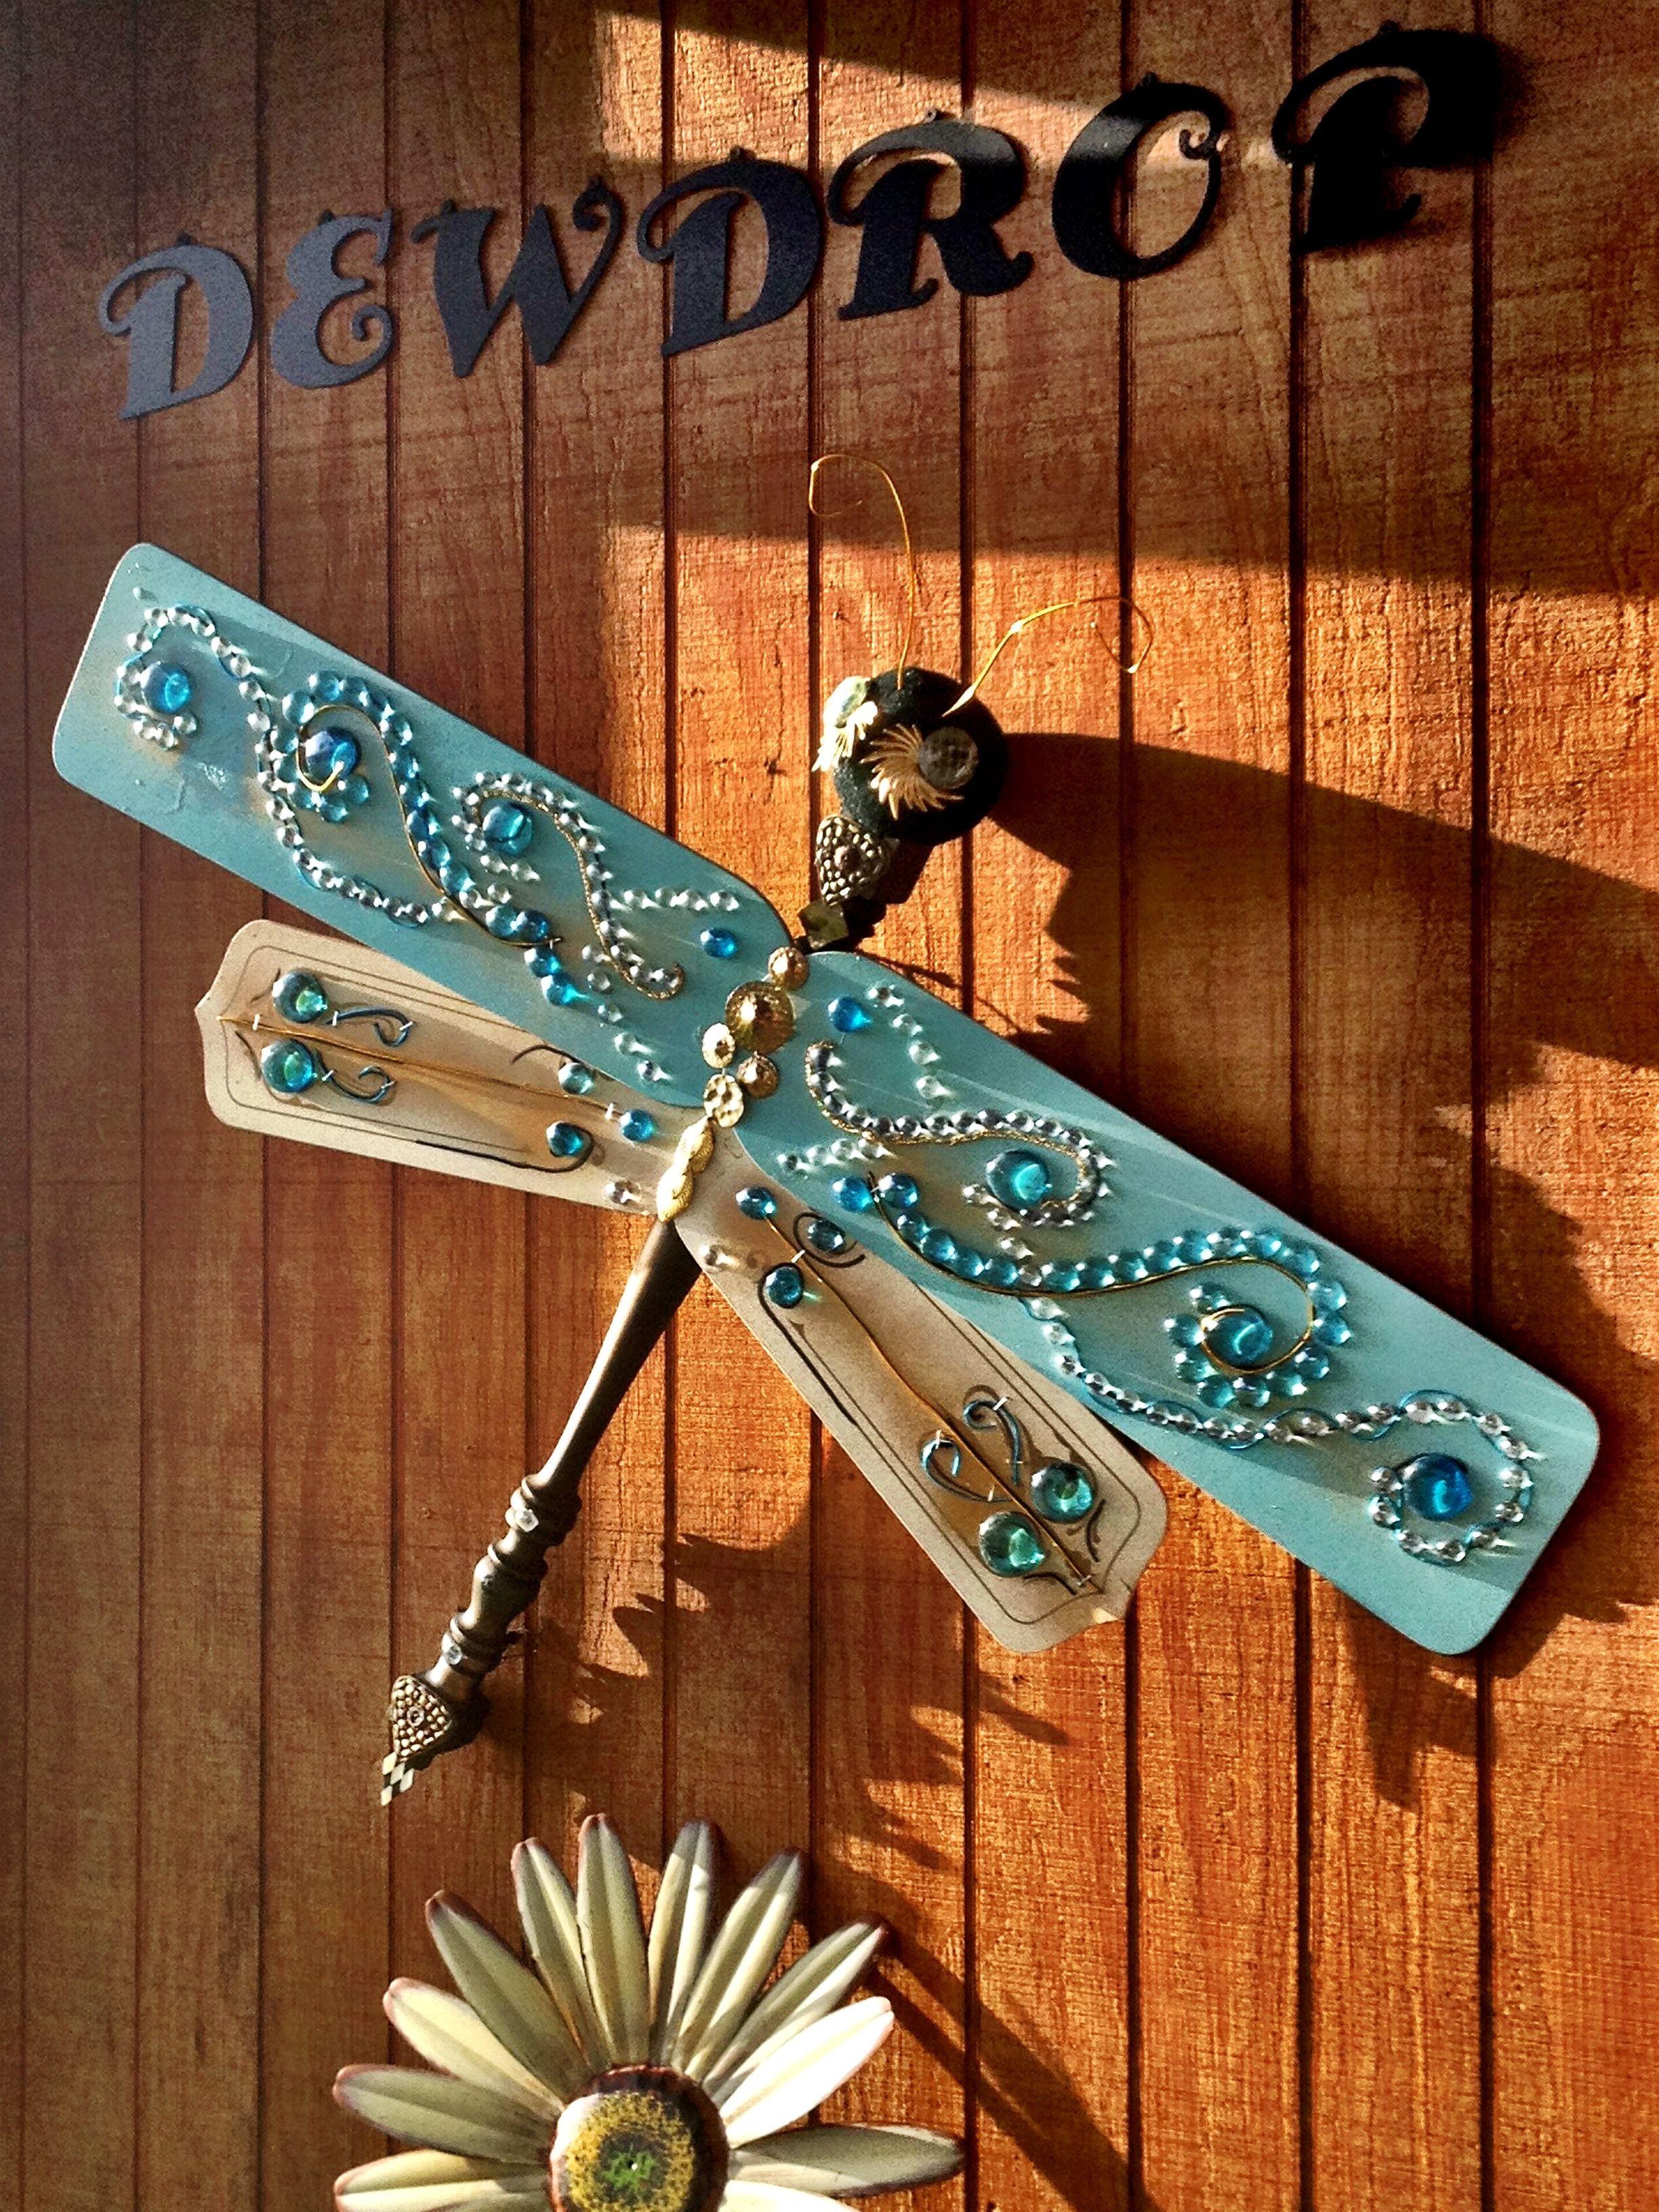 Dragonfly Made By Laurie Dewdrop Jewelry Baker An Idea